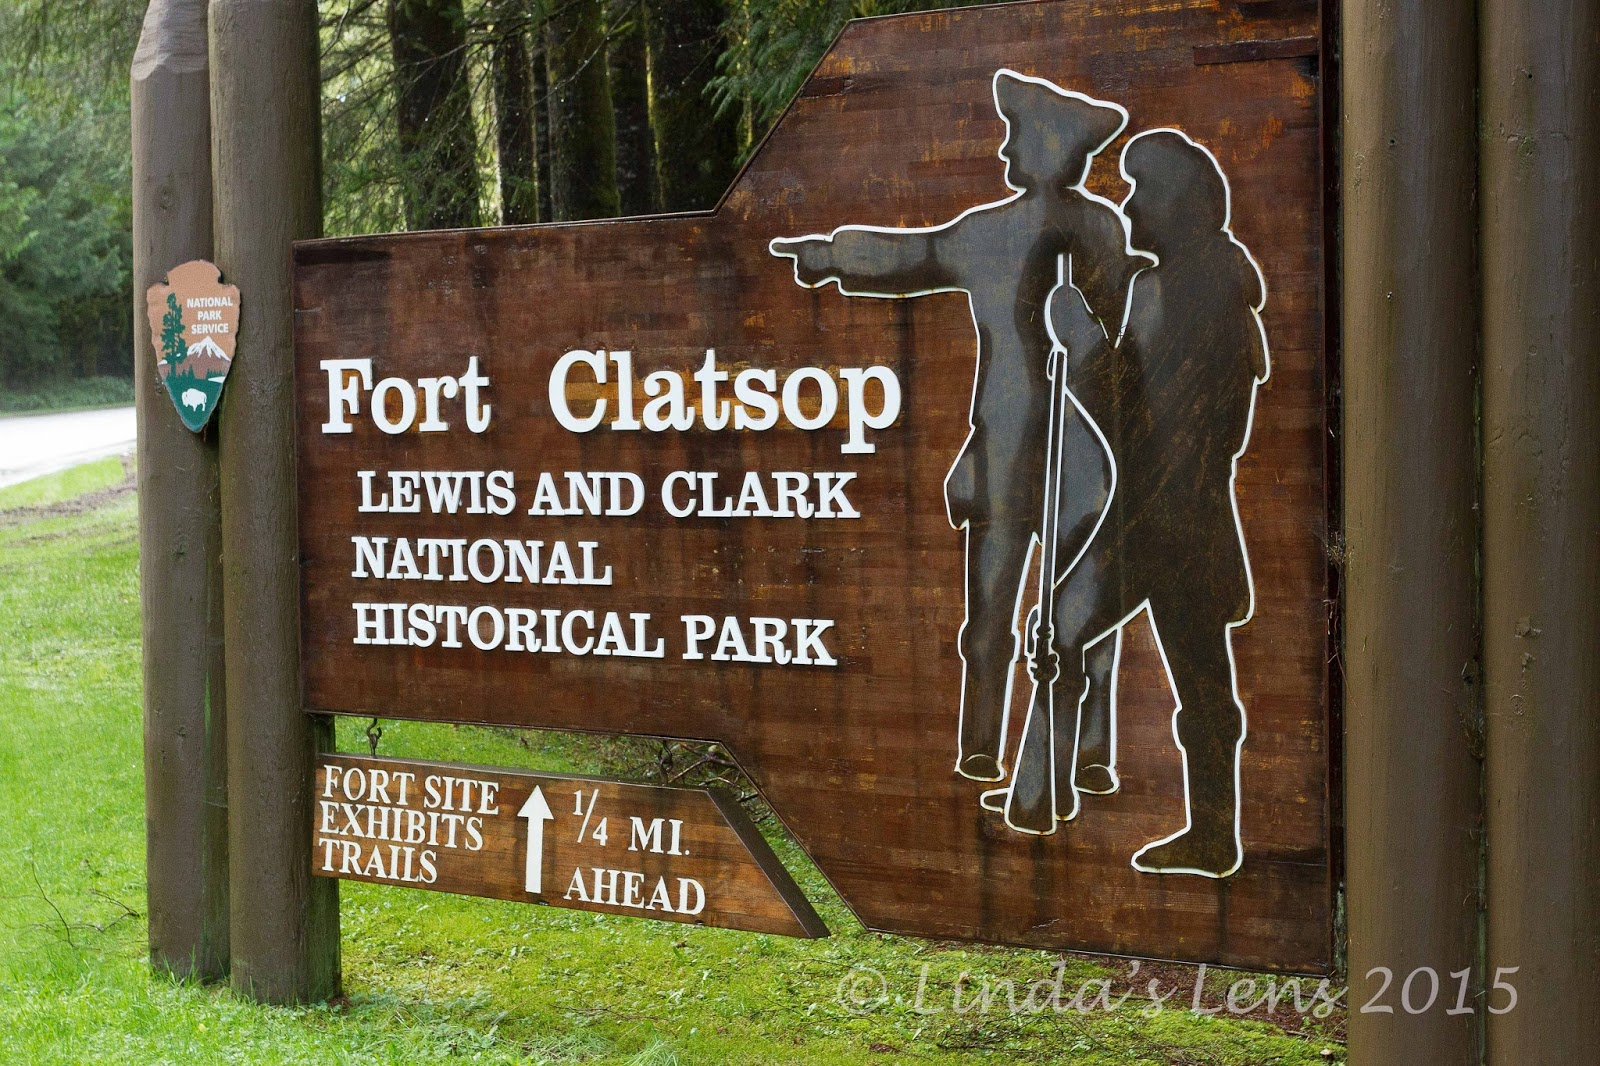 fort clatsop Fort clatsop is the site on the lewis and clark river where the 33-member lewis and clark expedition wintered from december 7, 1805, until march 23, 1806.